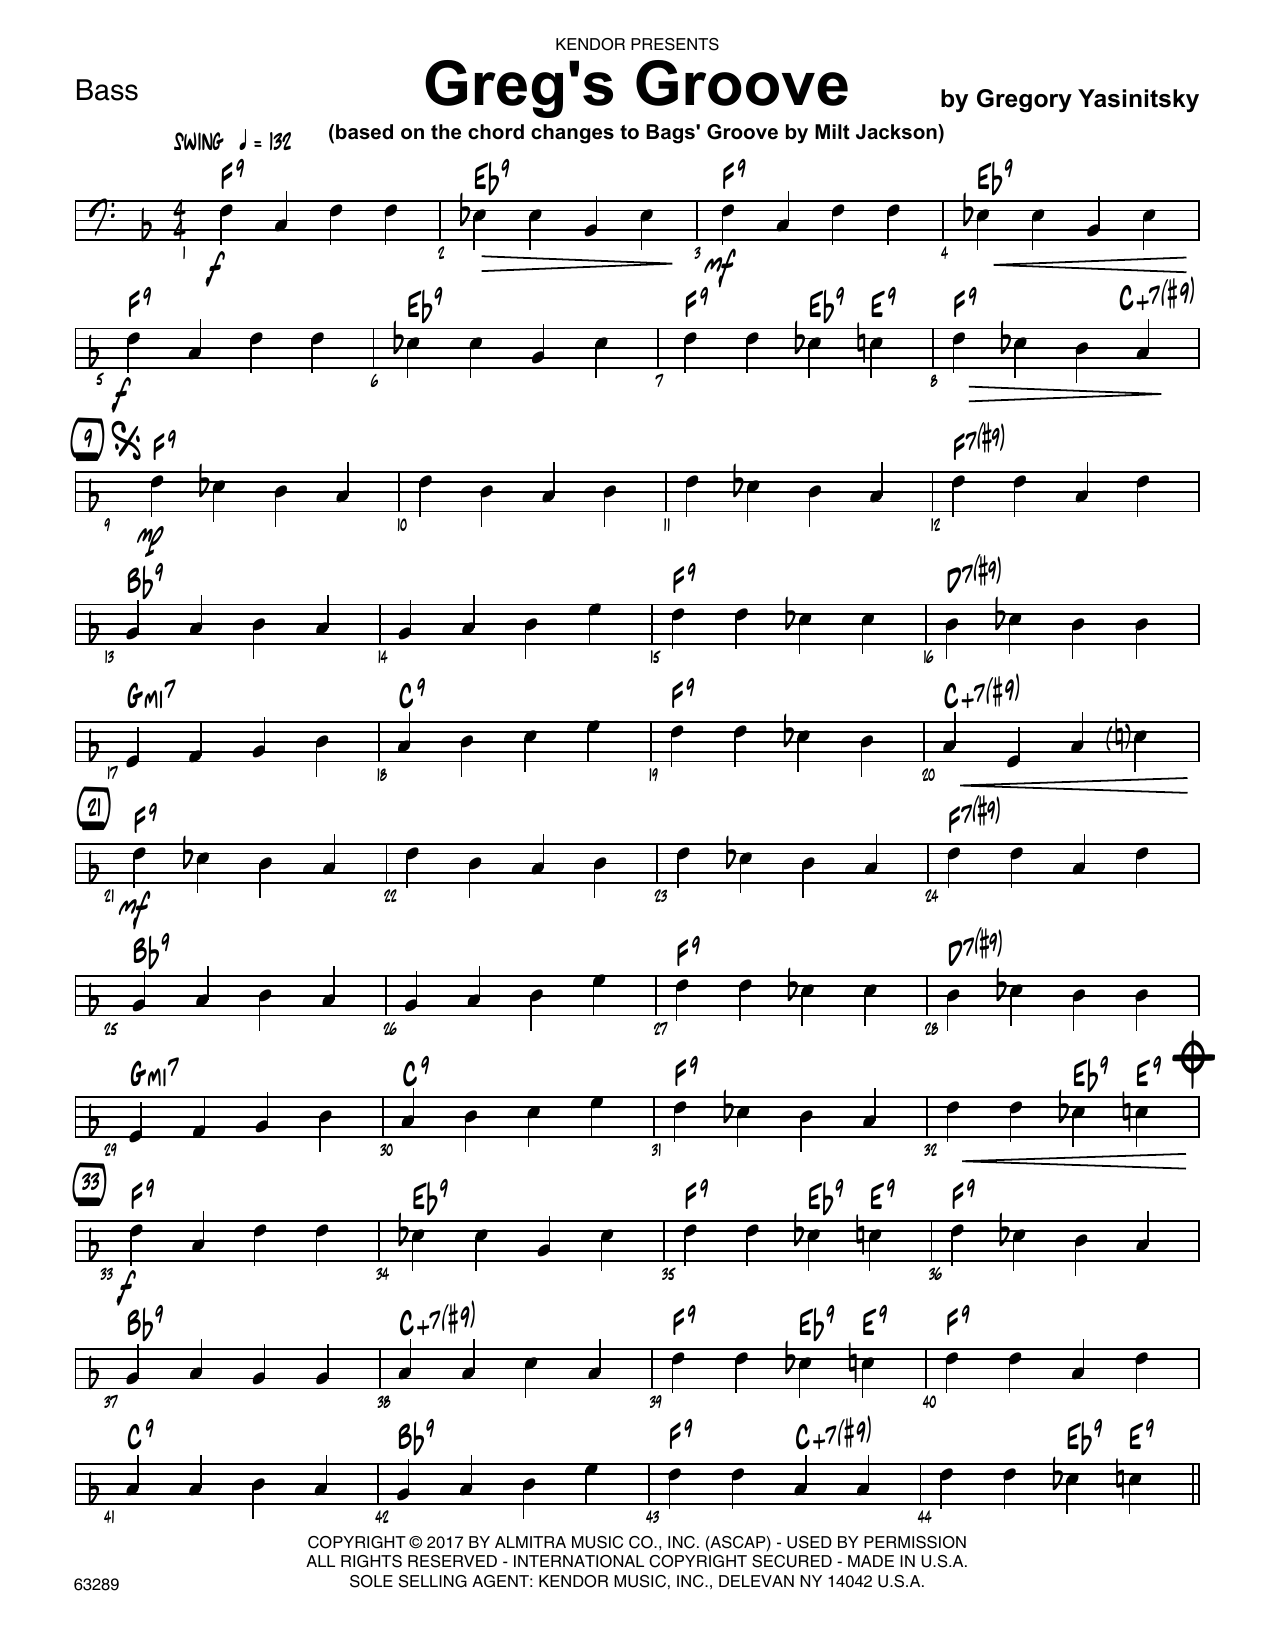 Greg's Groove - Bass Sheet Music